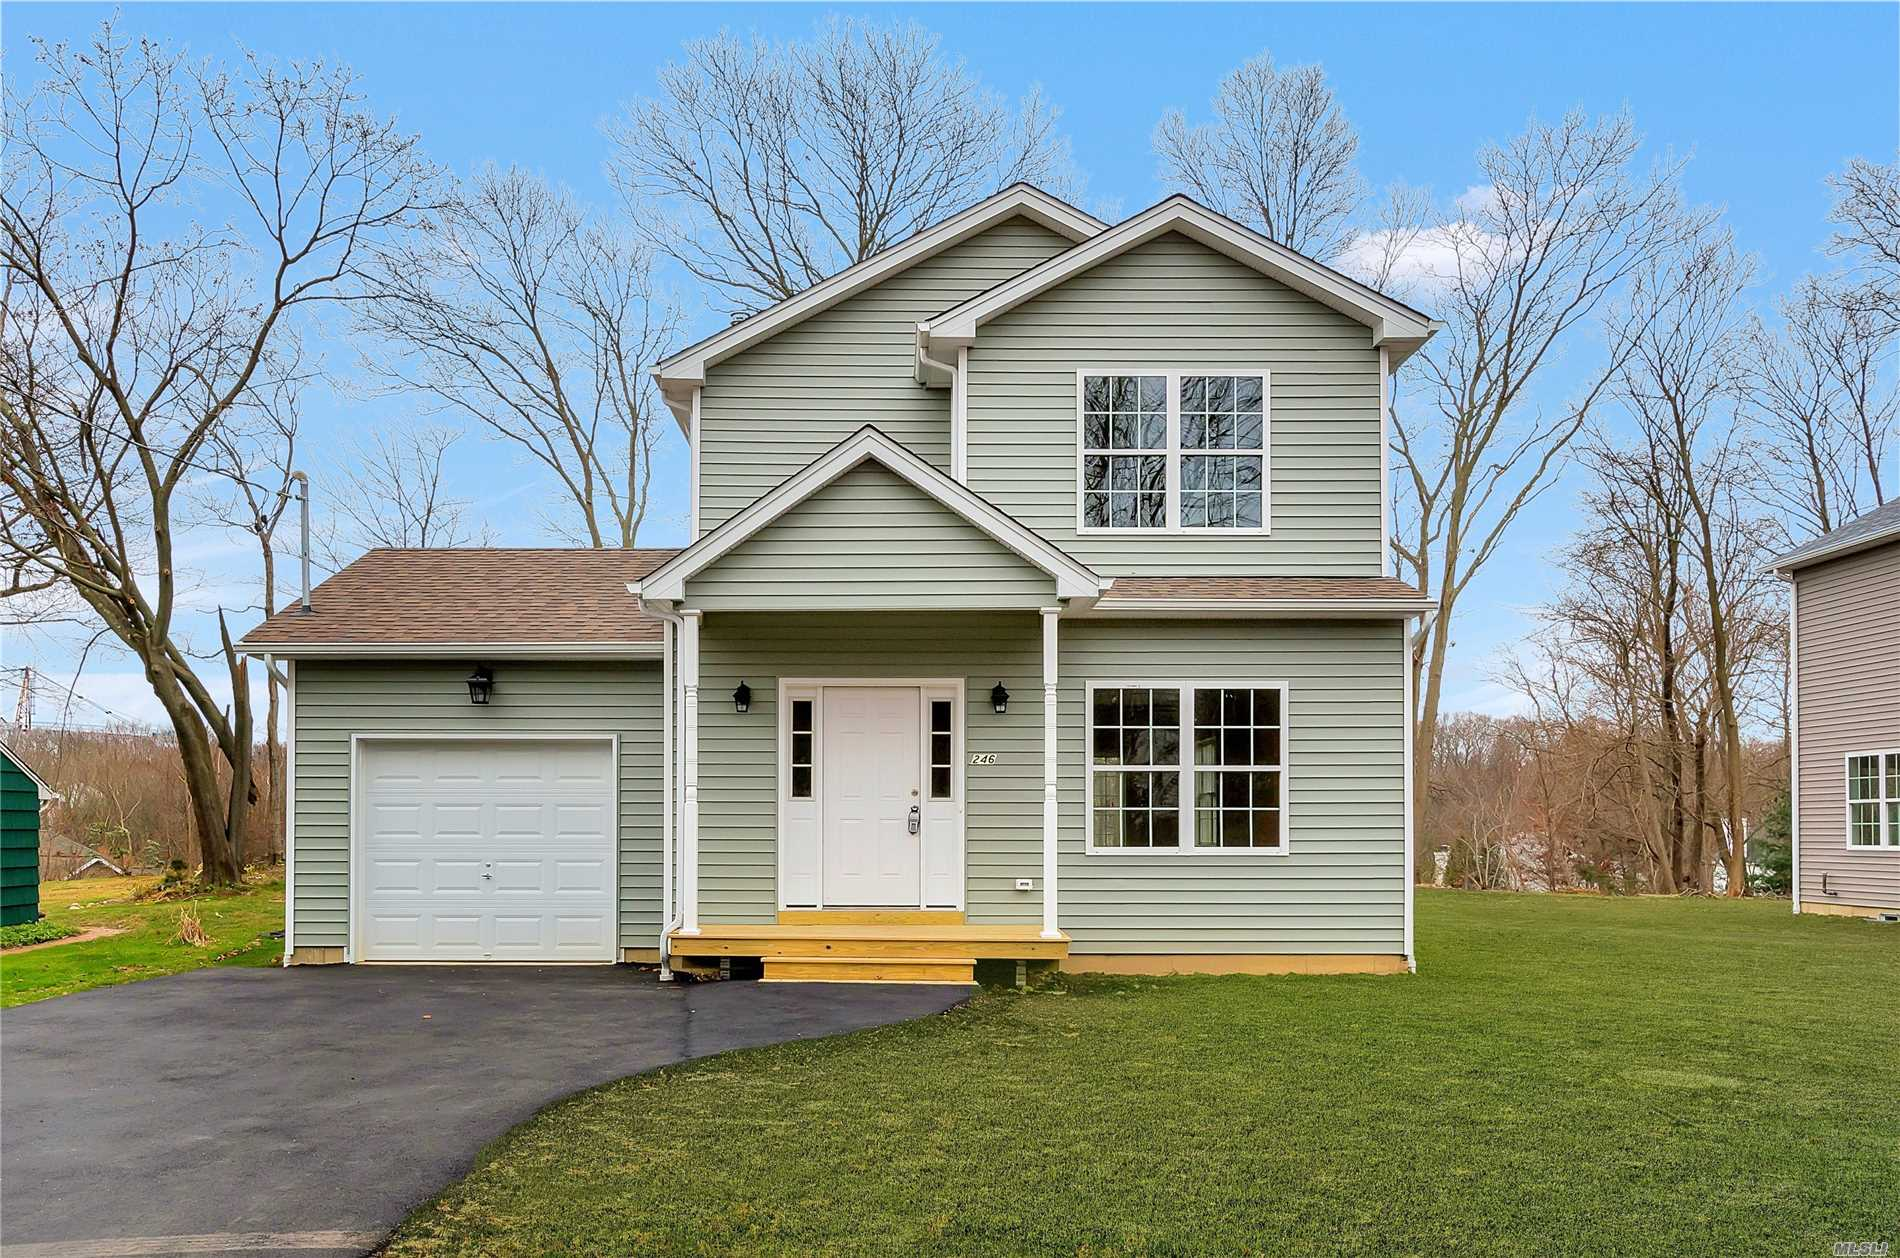 Fabulous New Construction!Get Ready To Be Wowed...9 Foot Ceilings And Oak Floors On 1st Floor. Large Eik With Quartz Counters. Full Basement With Ose. Cable Hook Up In Every Room, Raised Panel Doors. 200 Amp Service, Hers Certified. Vinyl Siding With Double Hung Windows.